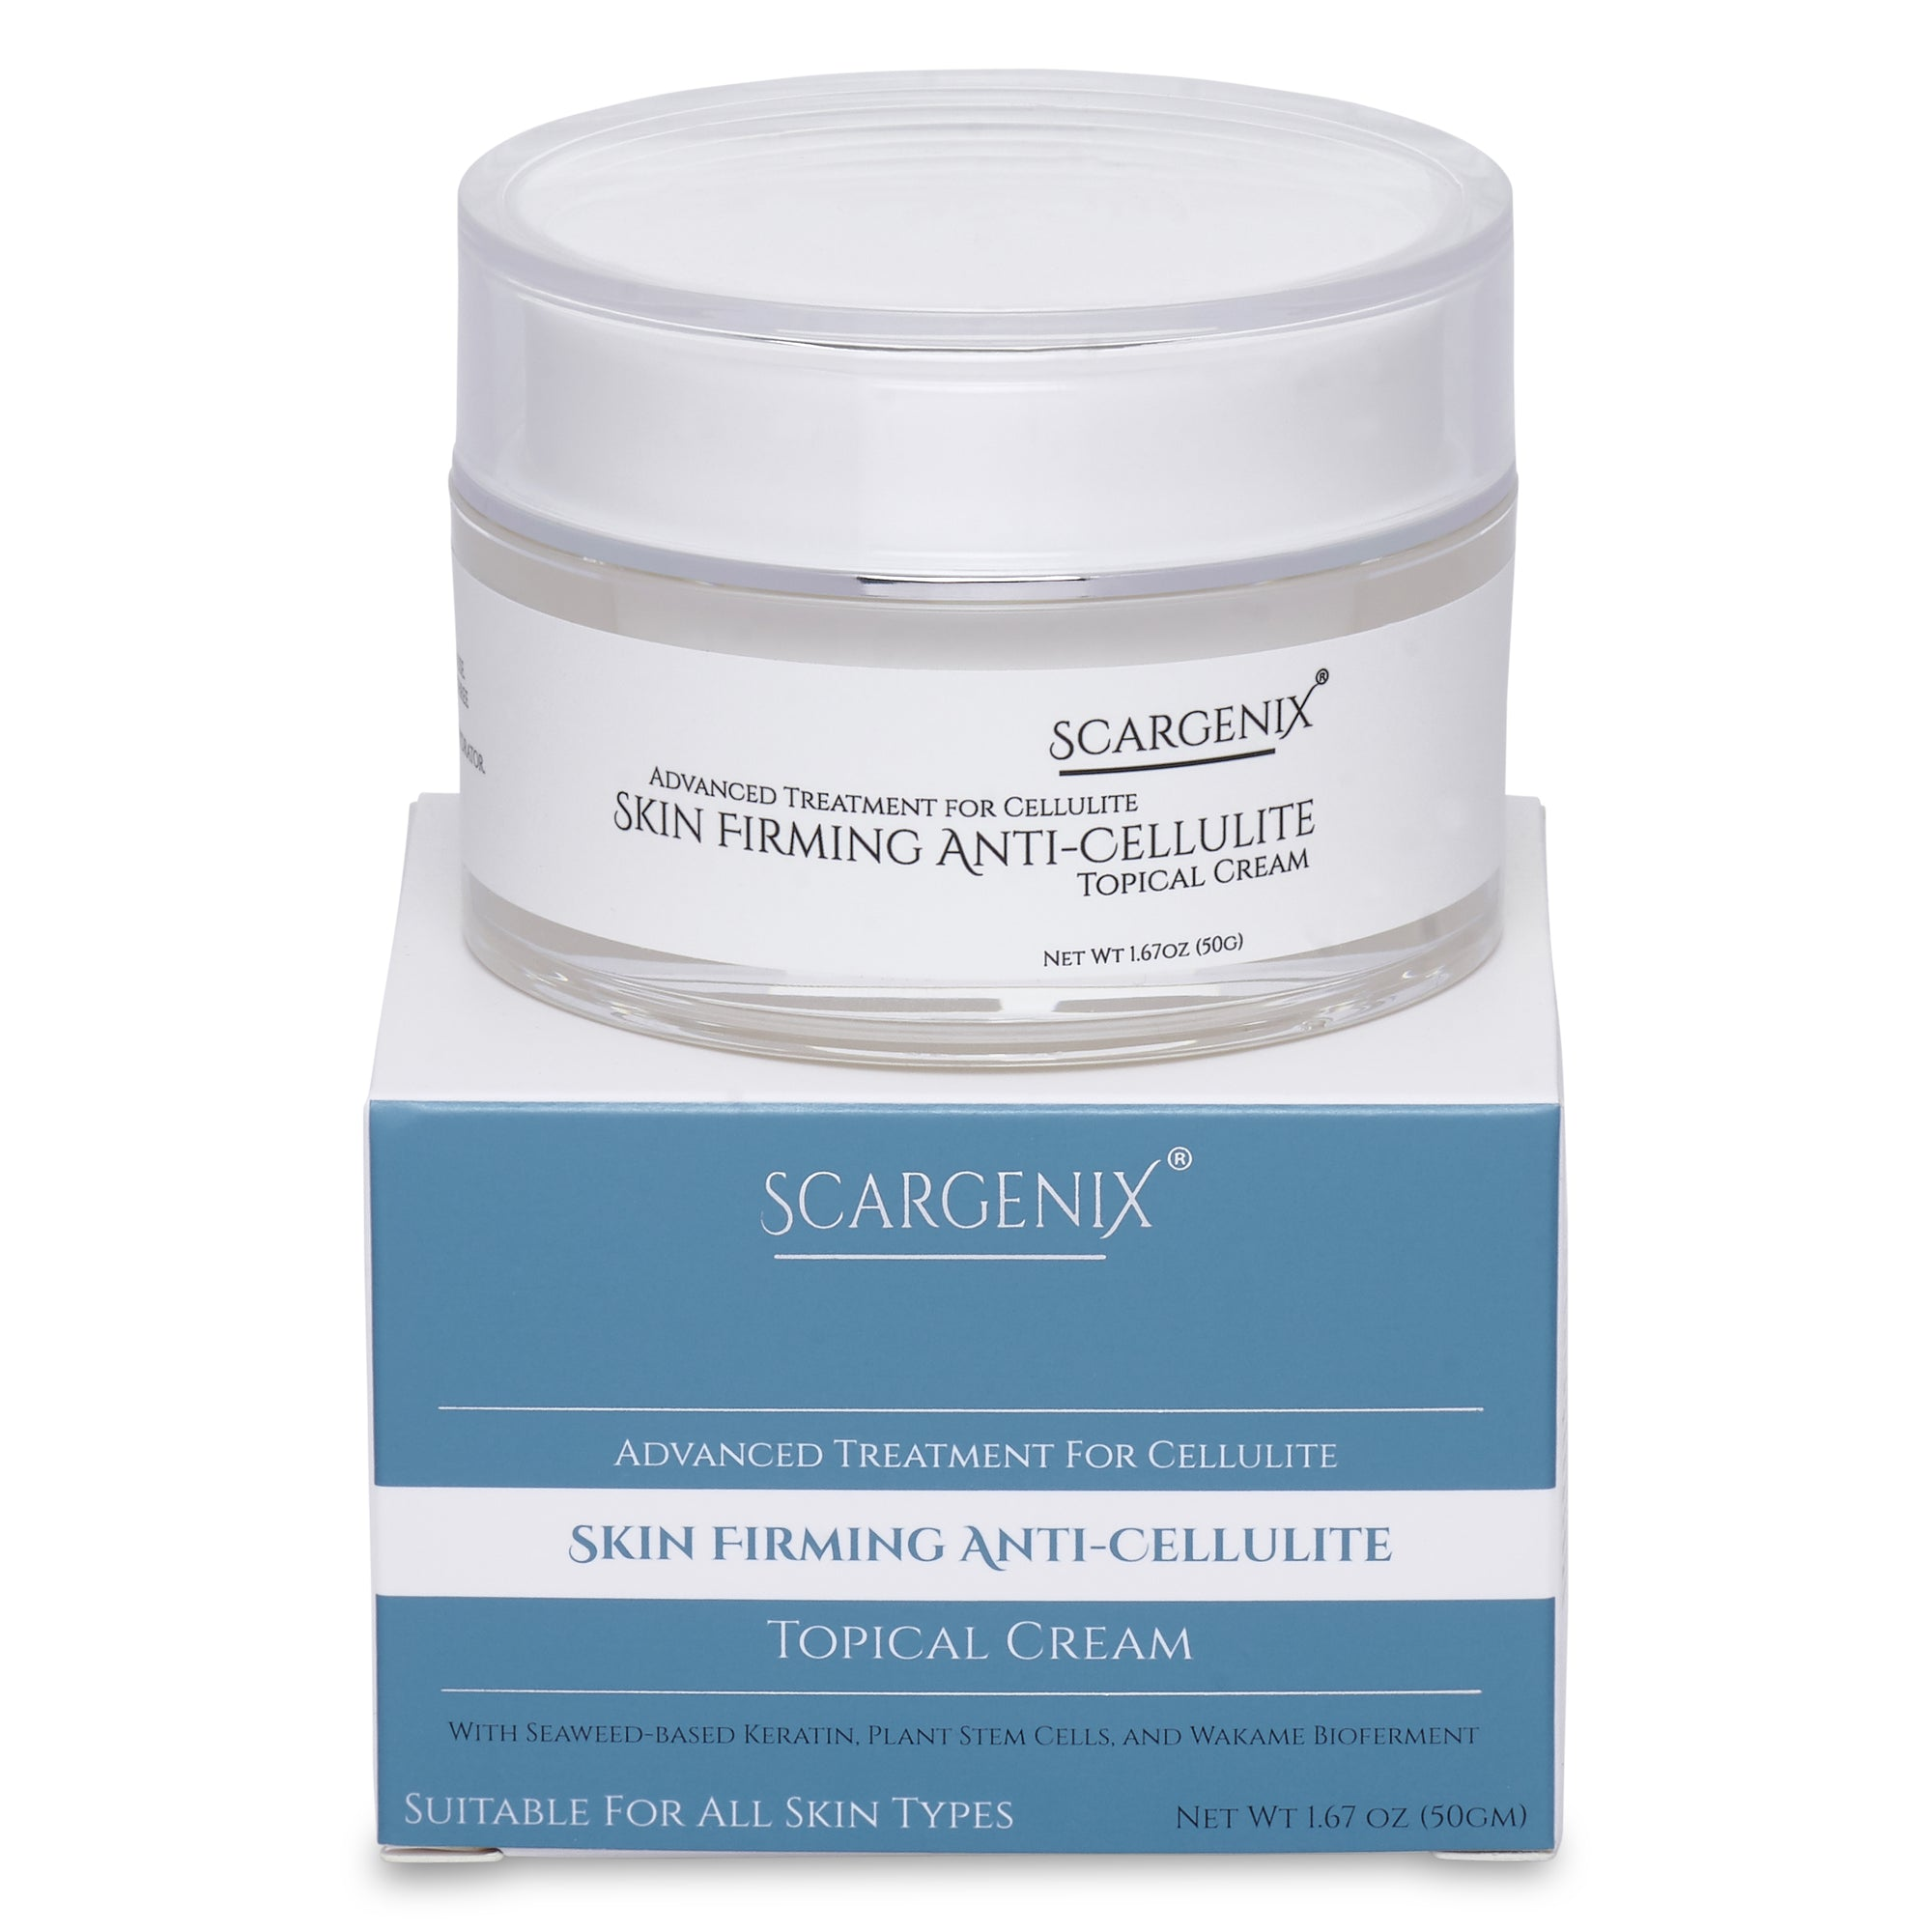 Advanced Cellulite Treatment, 50g